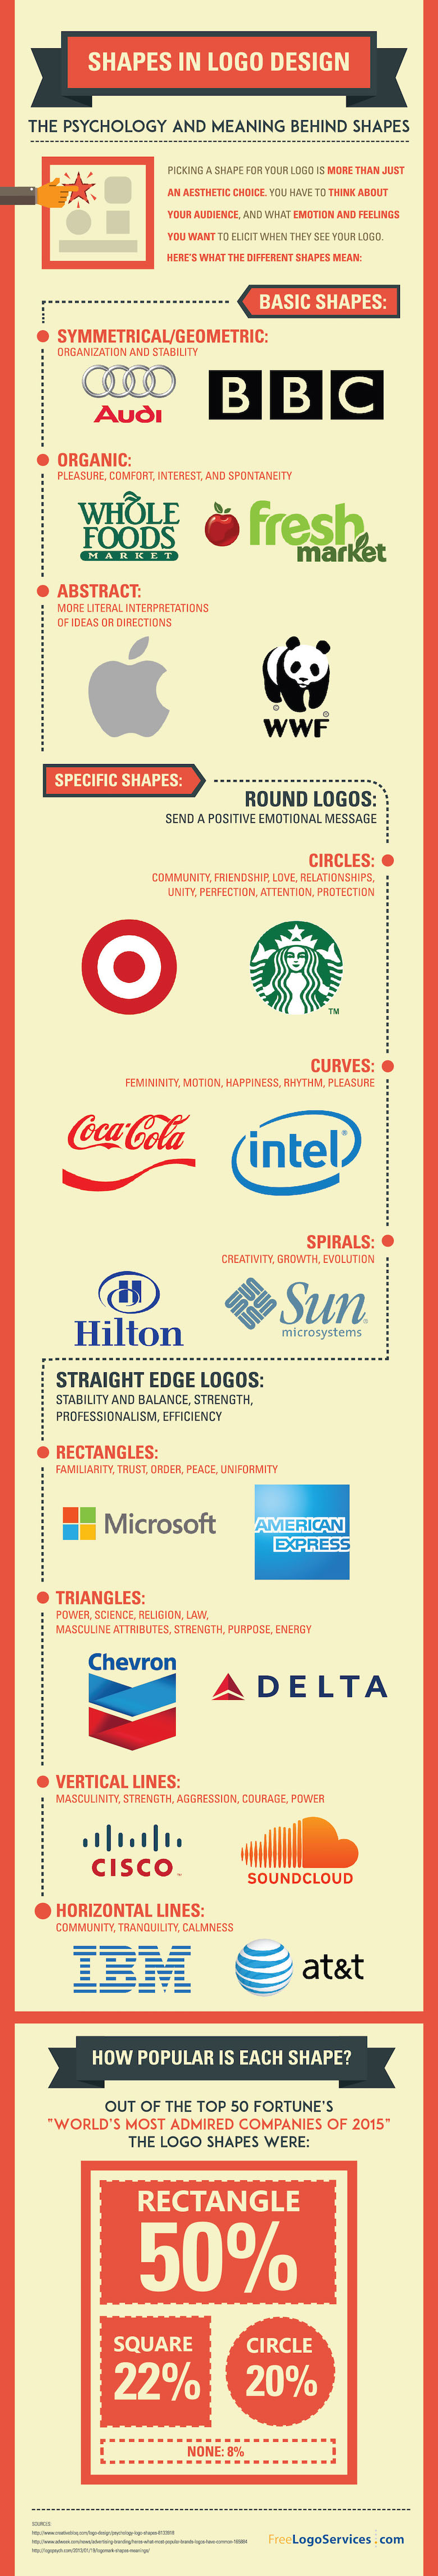 How Do Companies Come Up With Their Logo Designs?